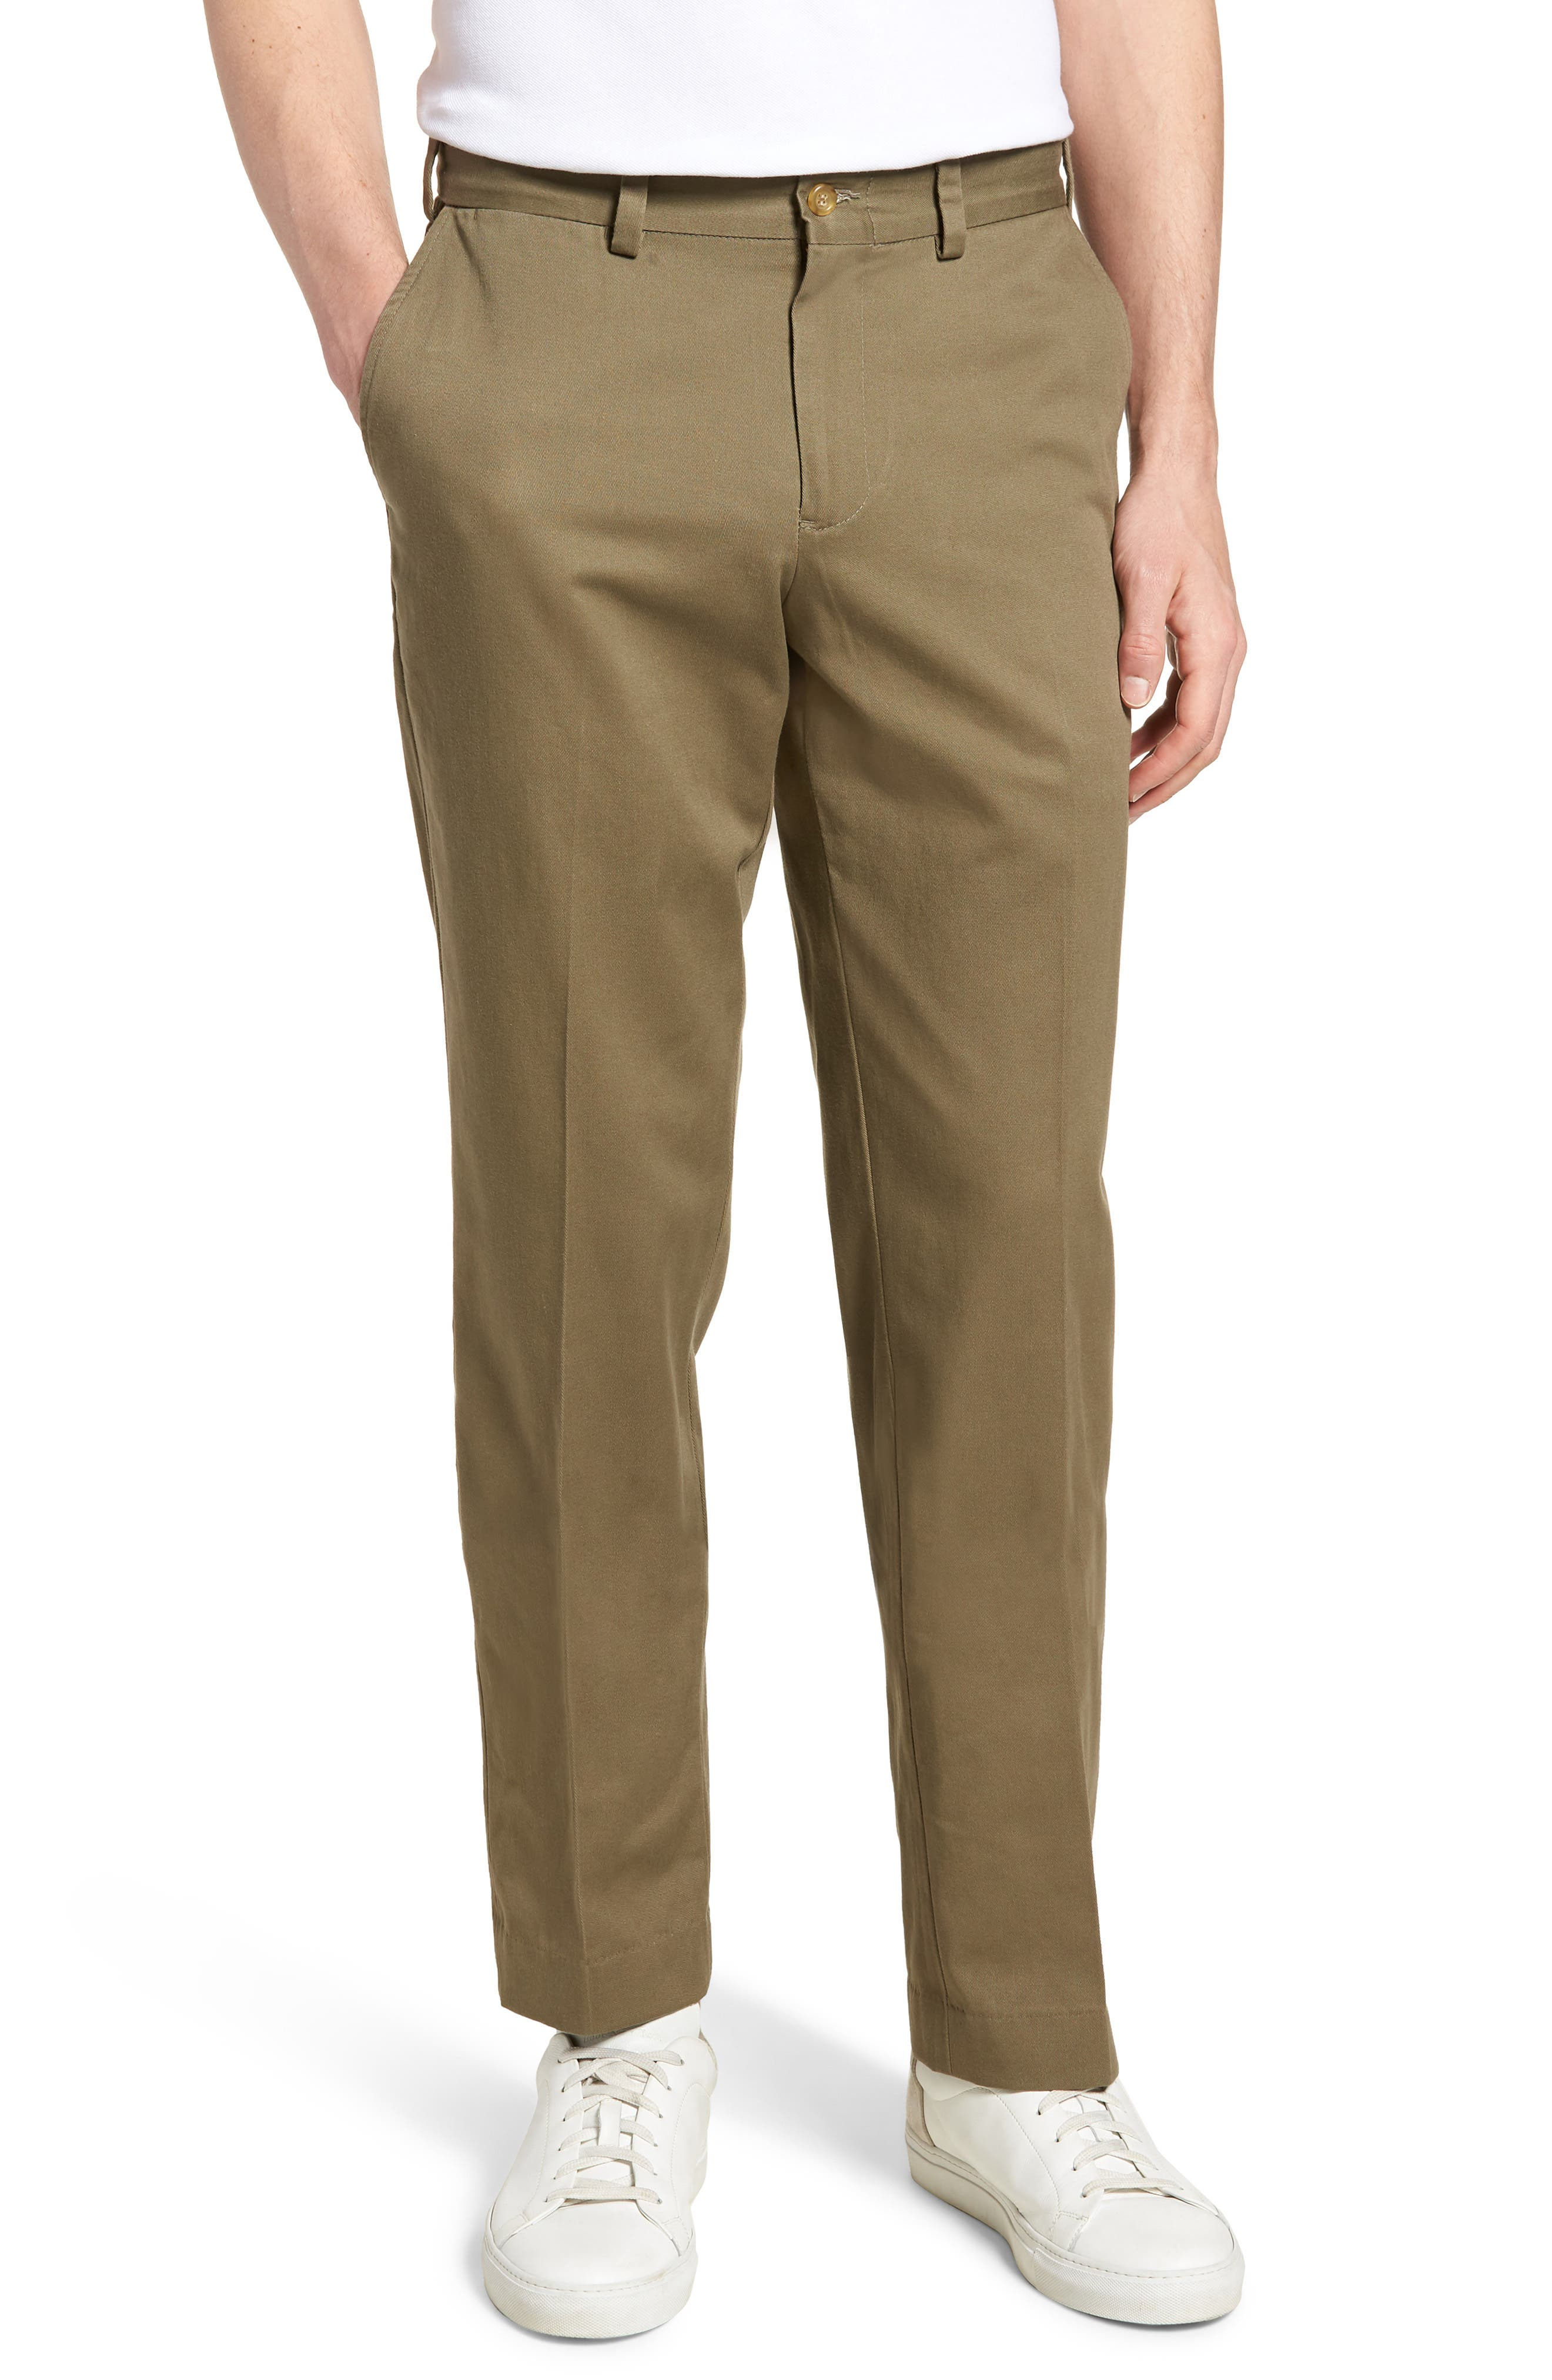 M3 Straight Fit Flat Front Vintage Twill Pants,                             Main thumbnail 1, color,                             Olive